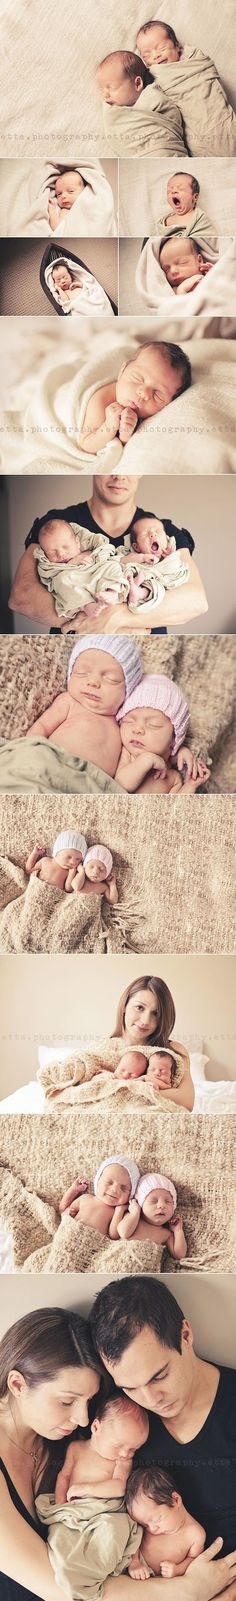 New Ideas For New Born Baby Photography : twin babies- I will ALWAYS regret not getting maternity/newborn portraits with m